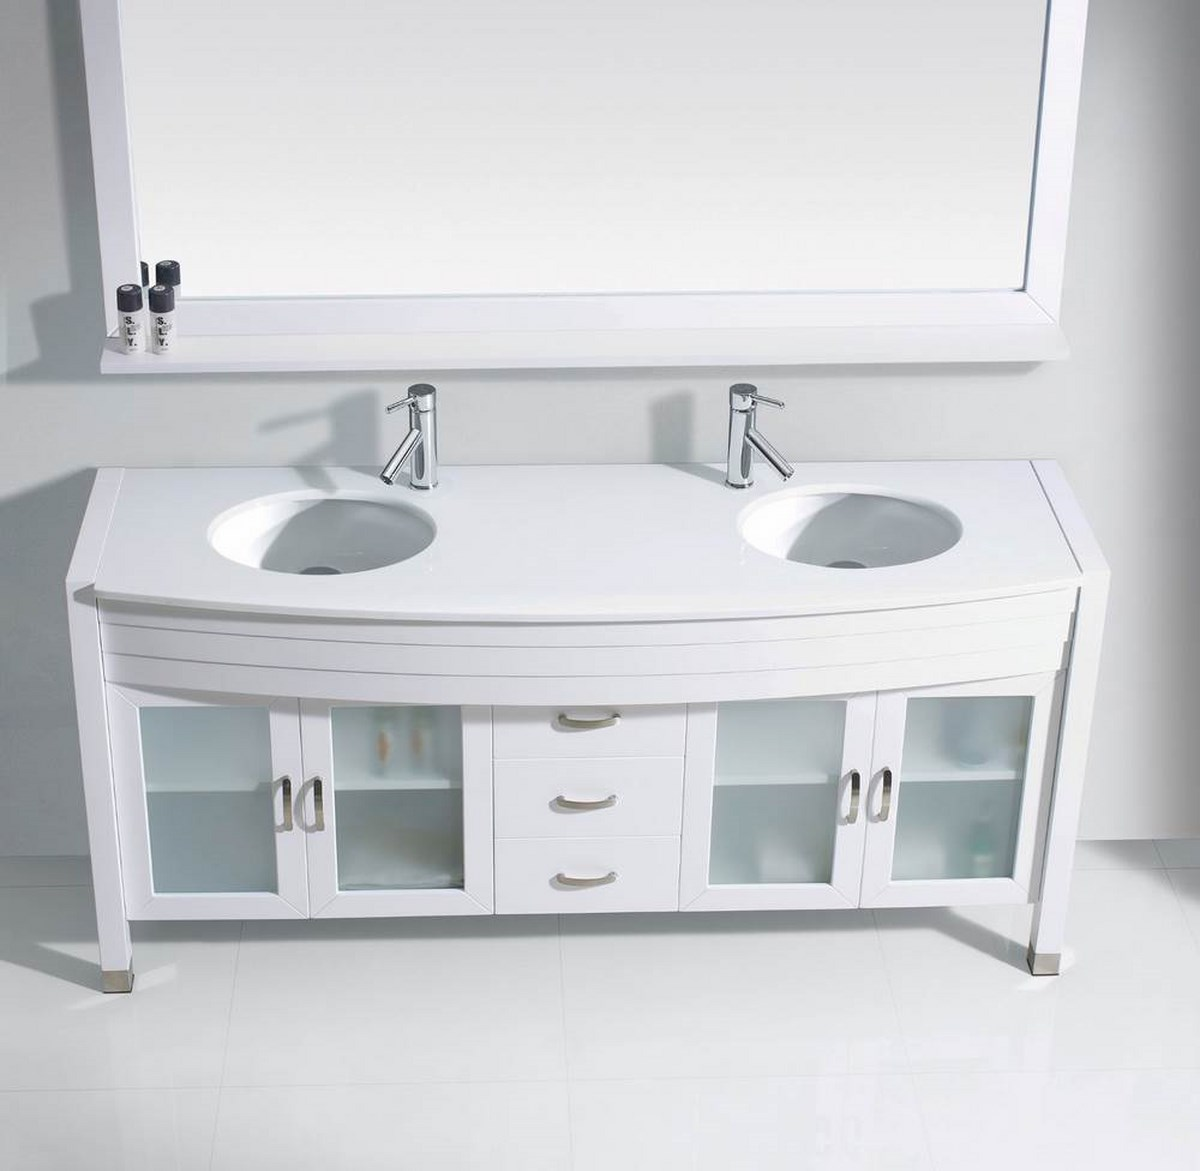 Bathroom vanities double sink vanities home decor interior design discount furniture Bathroom sink and vanity sets